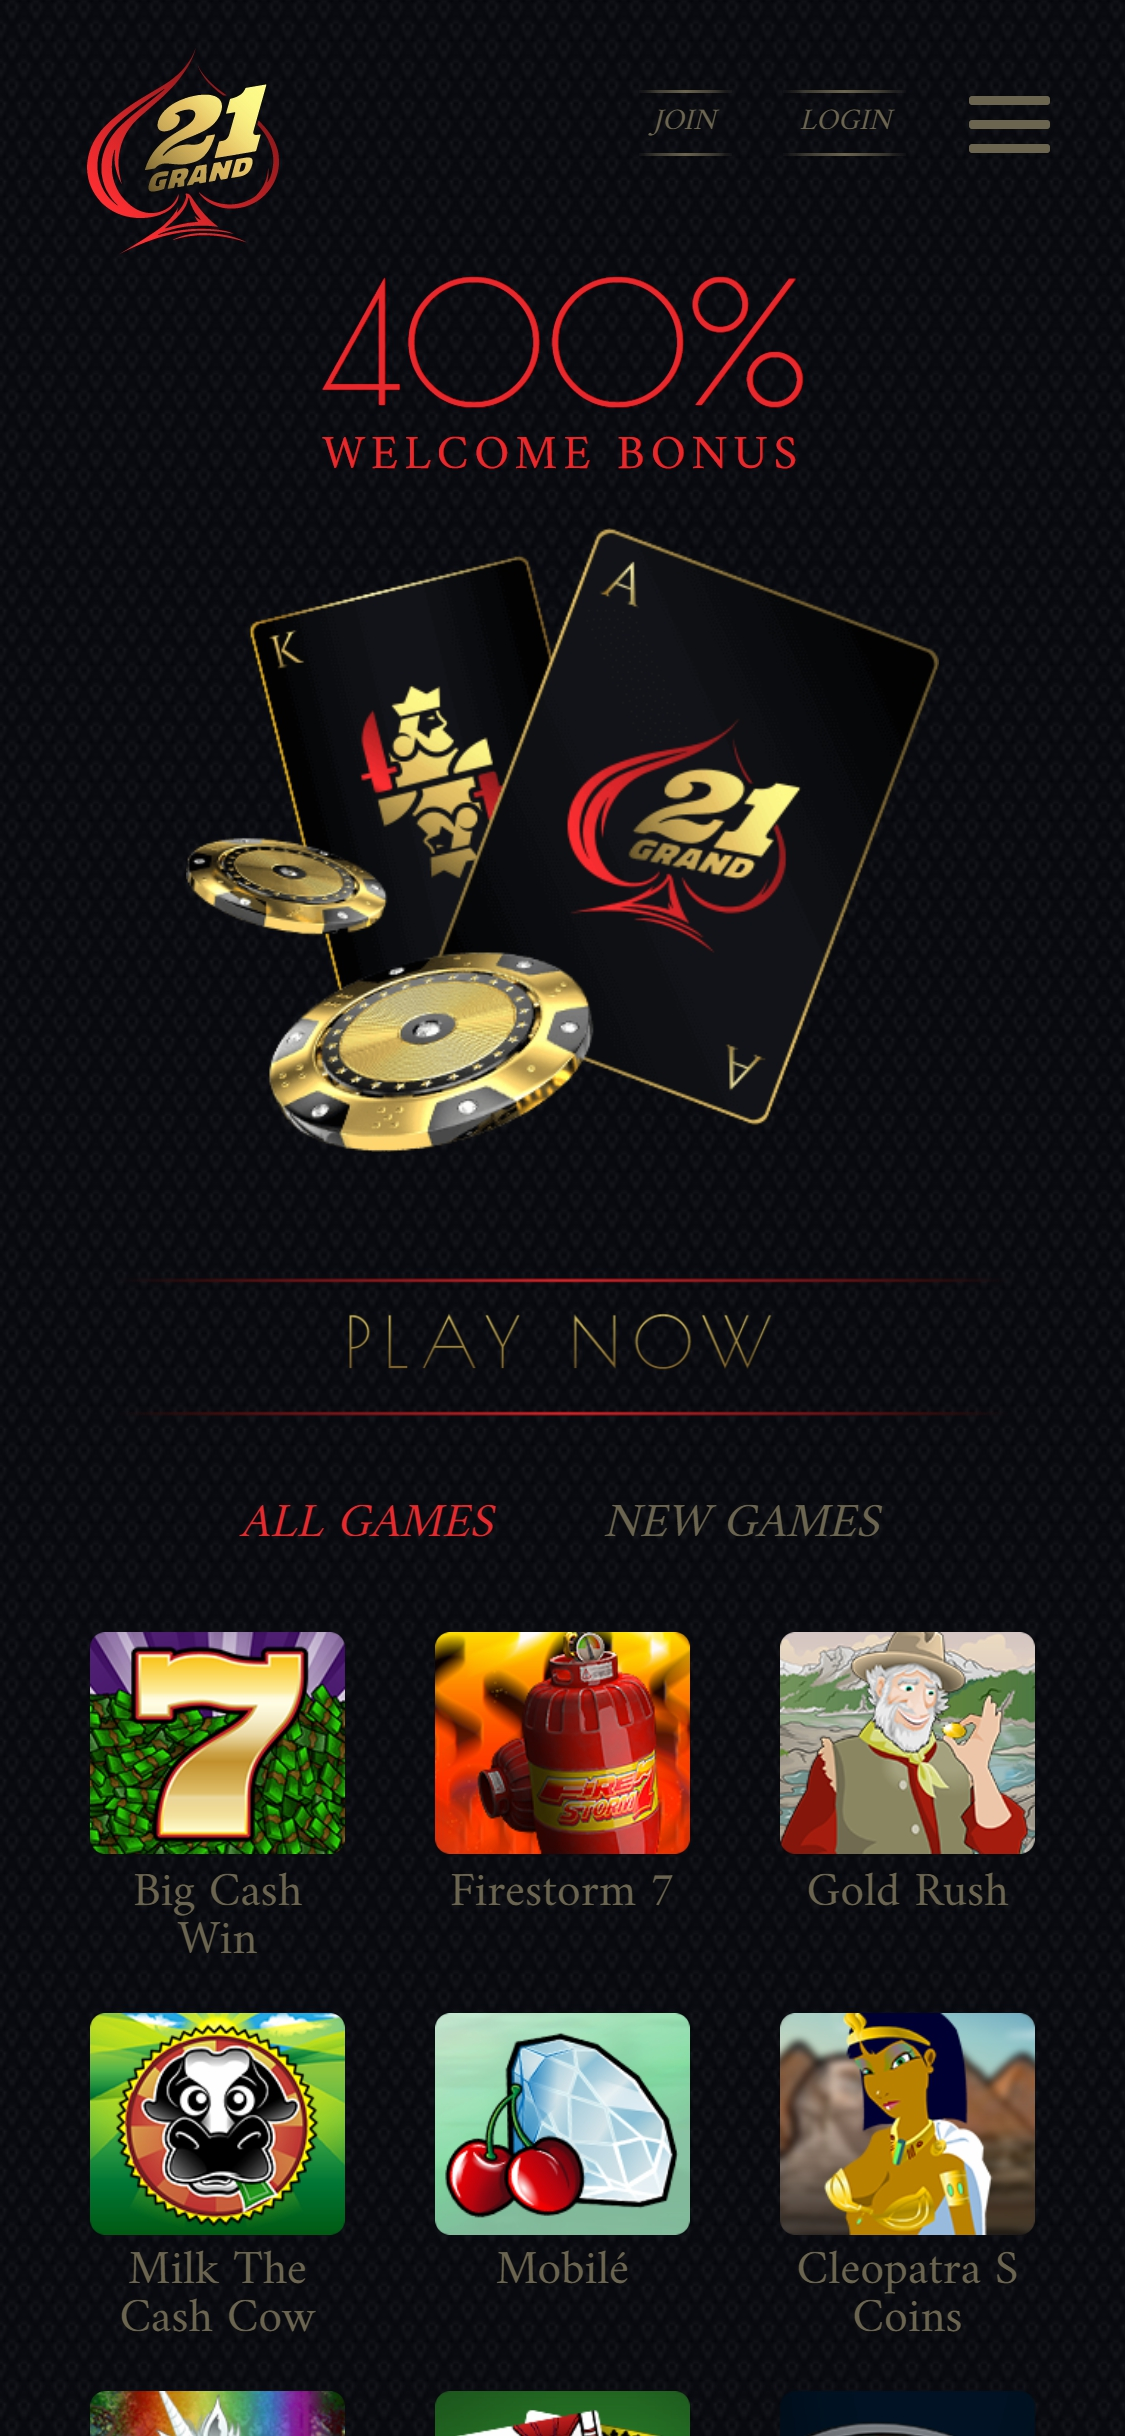 21 Grand Casino Europe Review